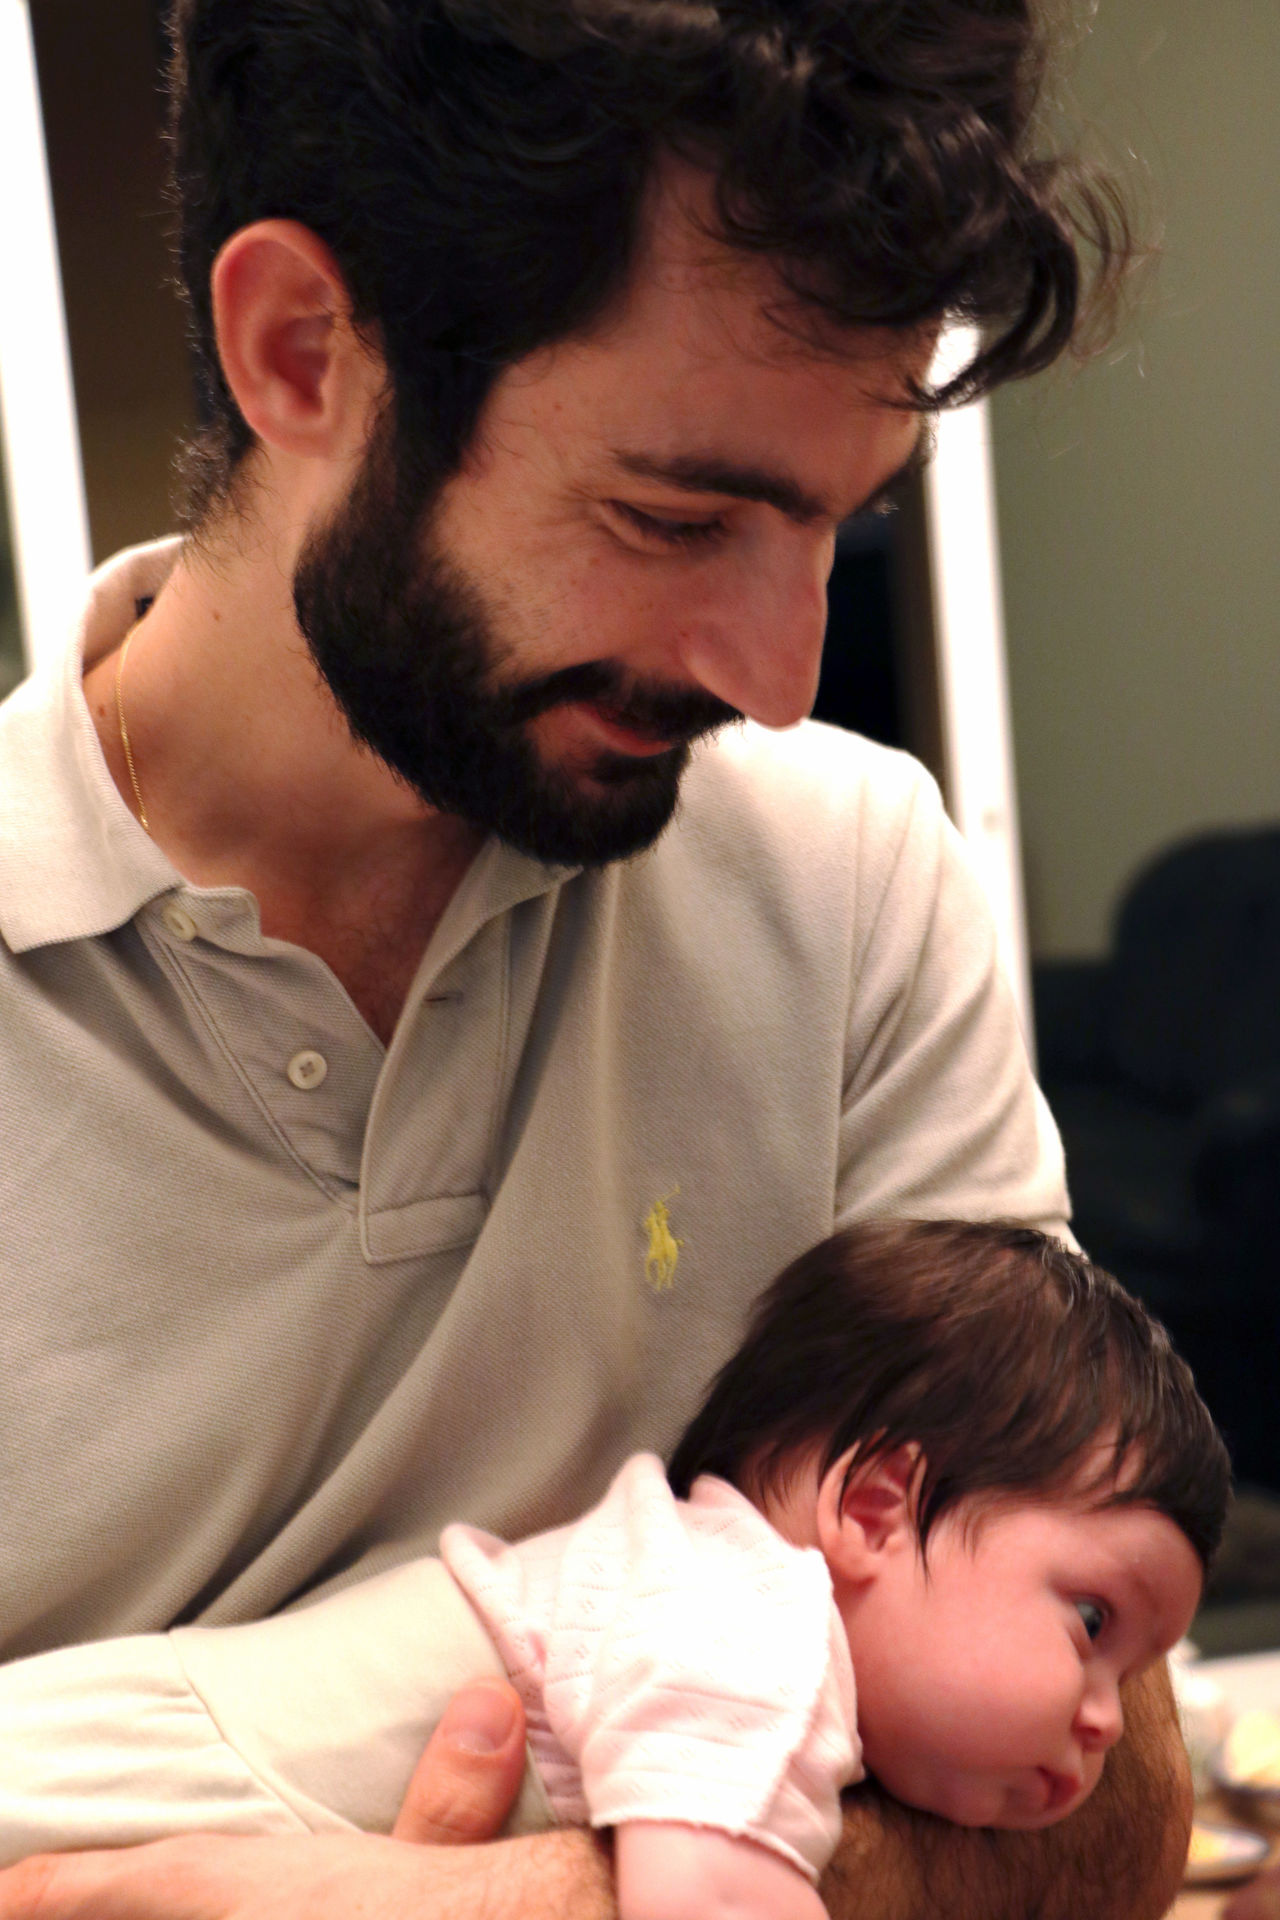 Arms Baby Beard Bonding Family Father And Daughter Fatherhood Moments Rocking Smile Togetherness Two People